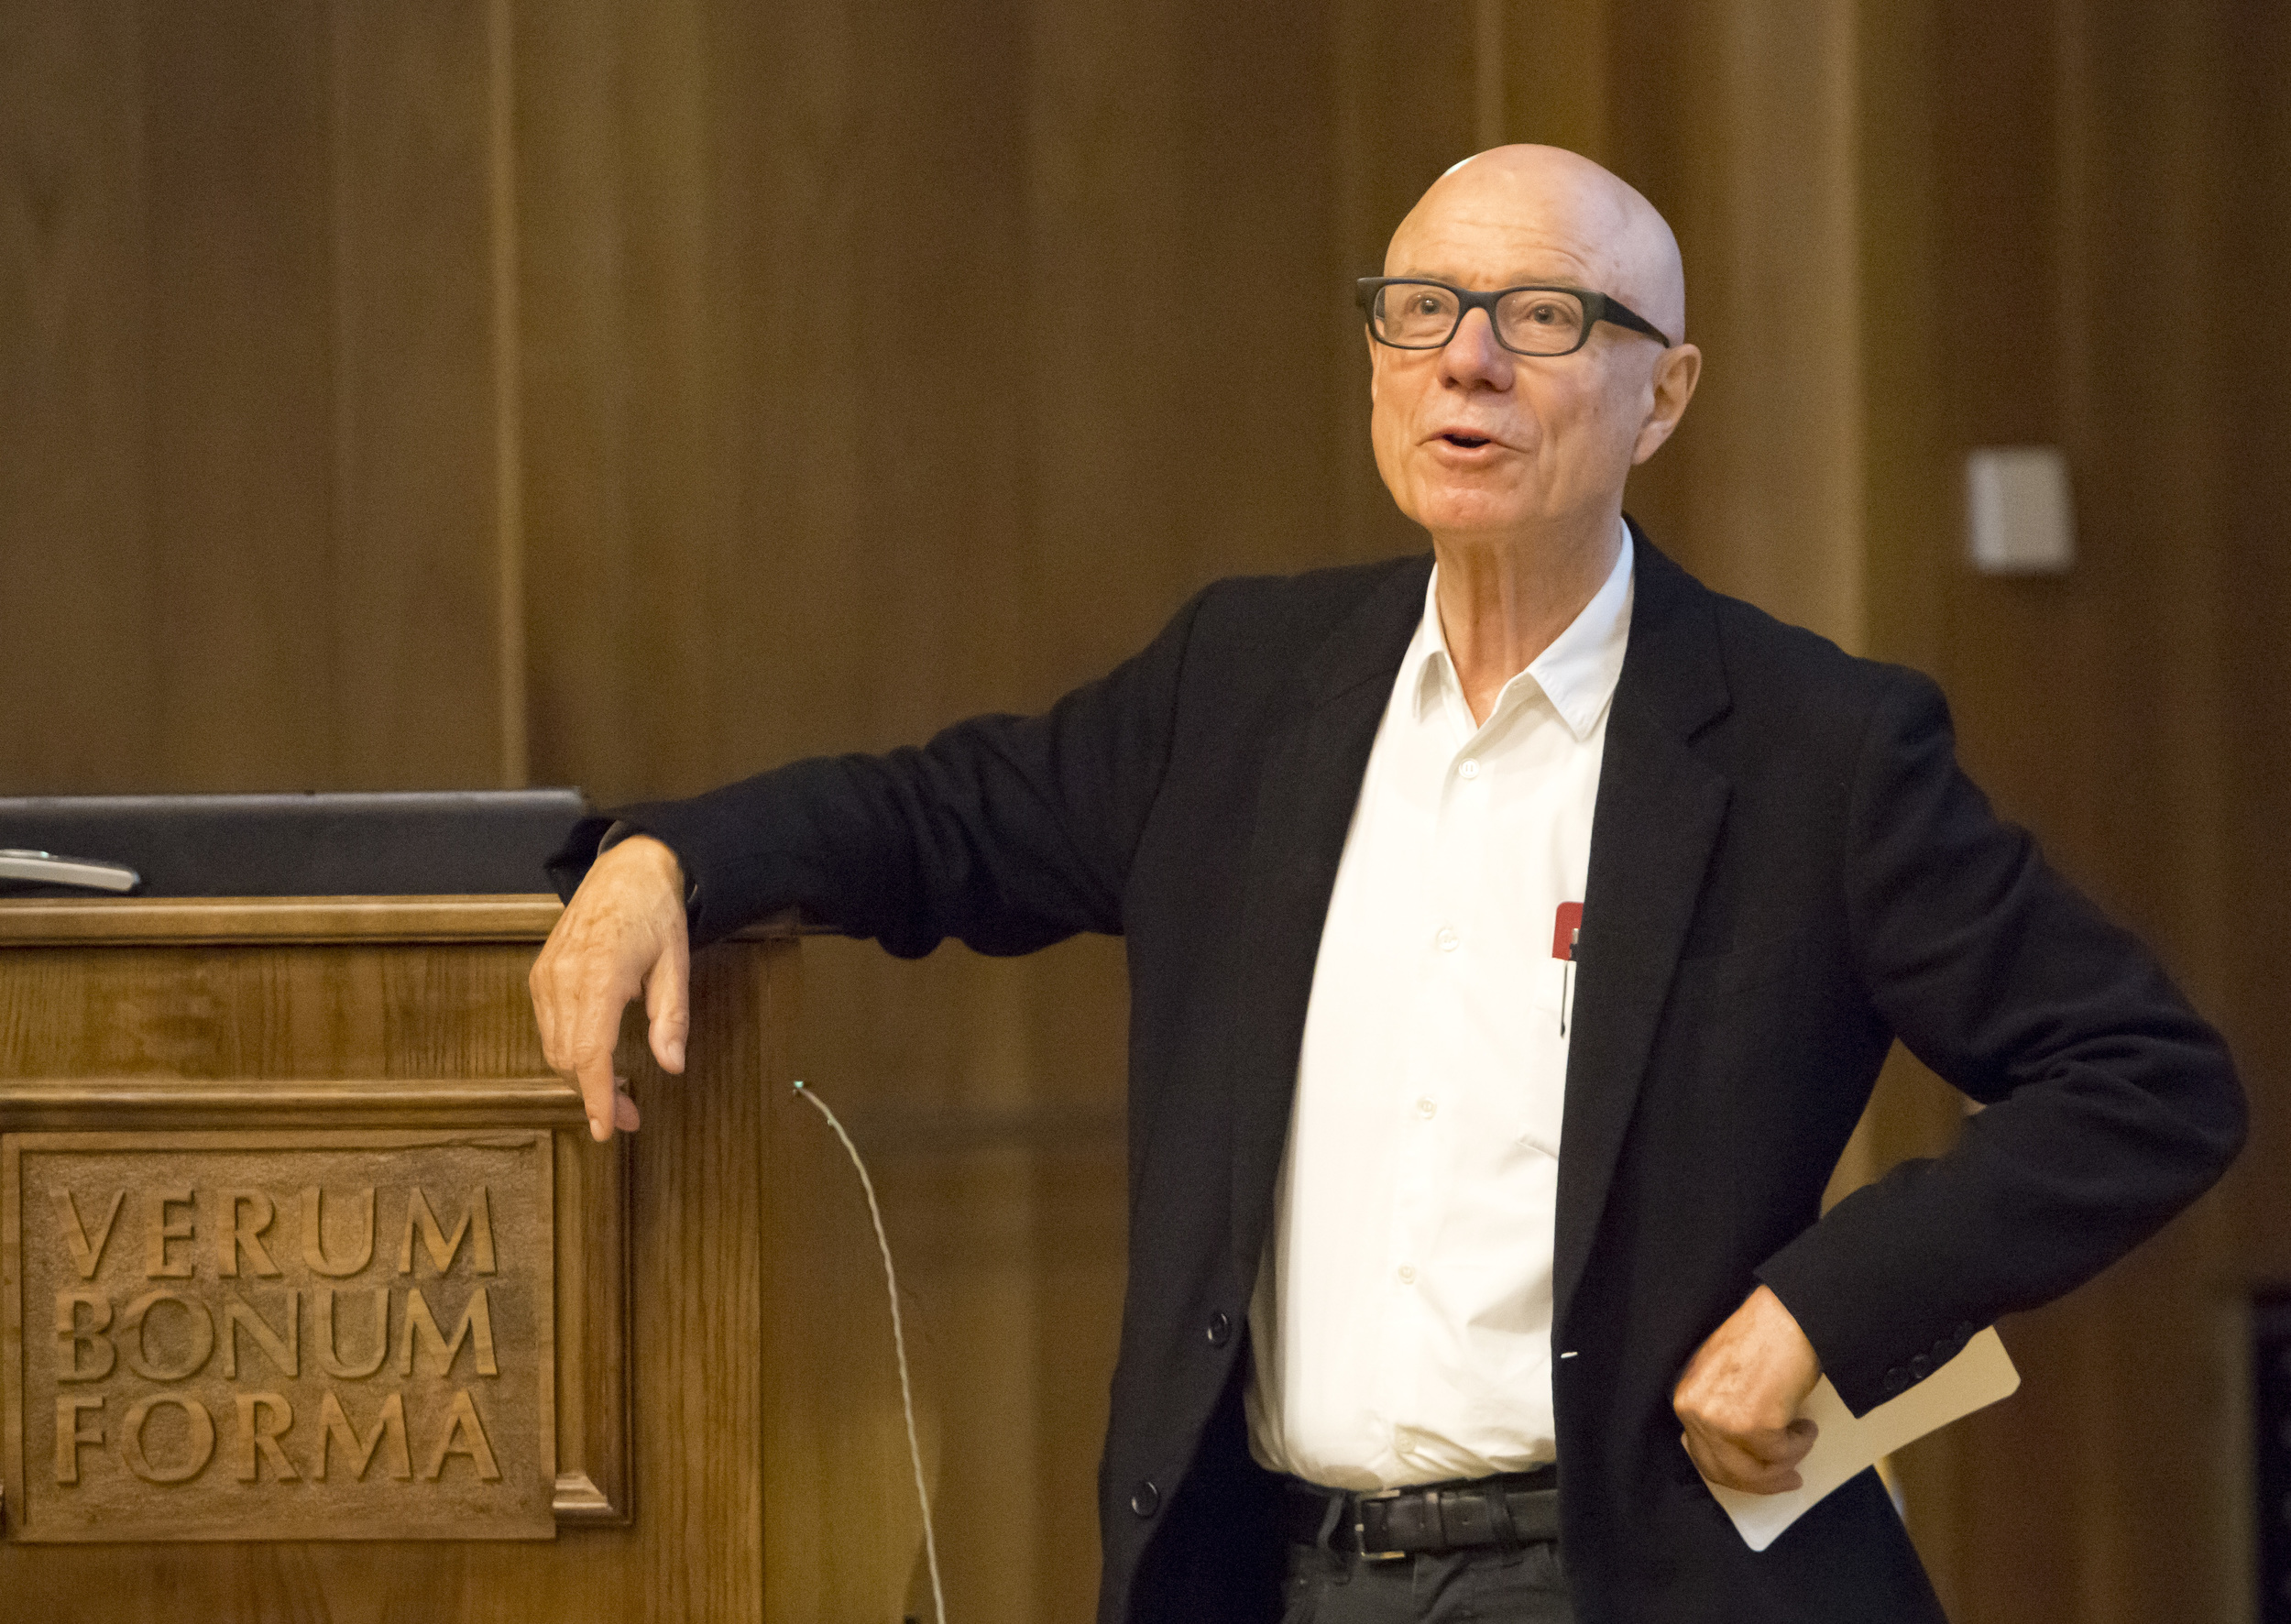 Rolf Fehlbaum speaks to students and faculty in the Palmer Center.